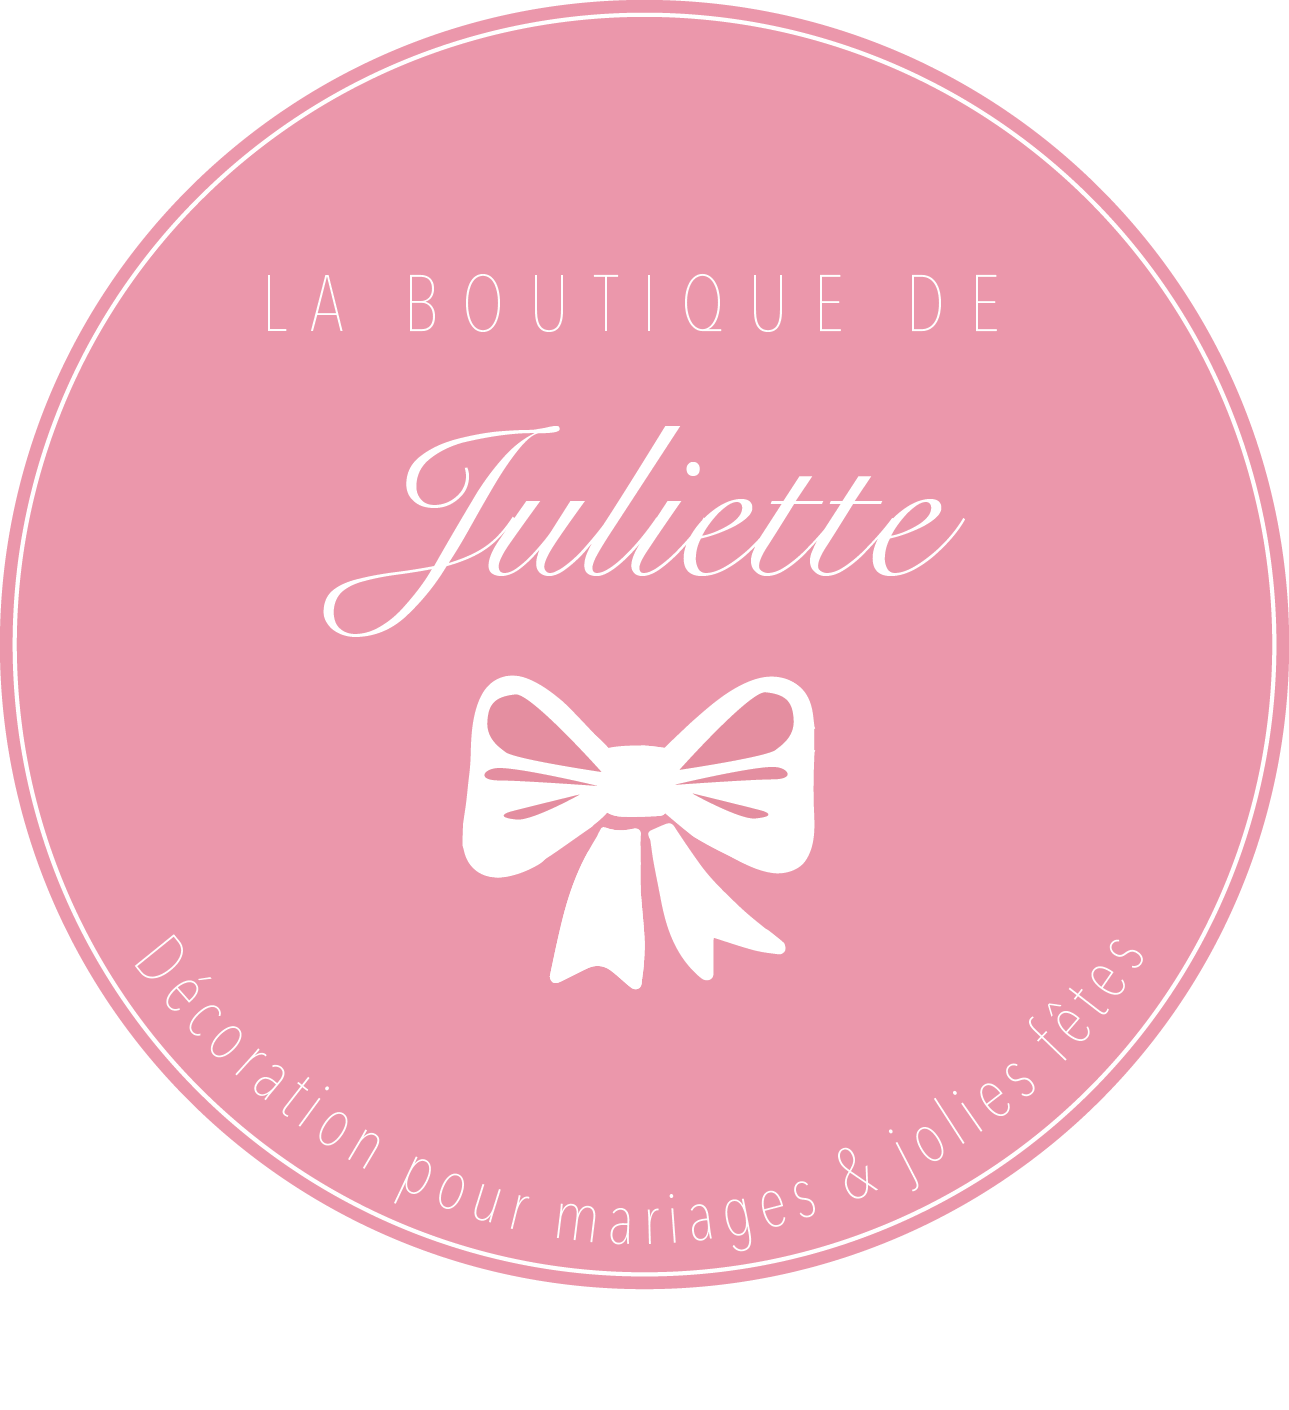 La boutique de Juliette